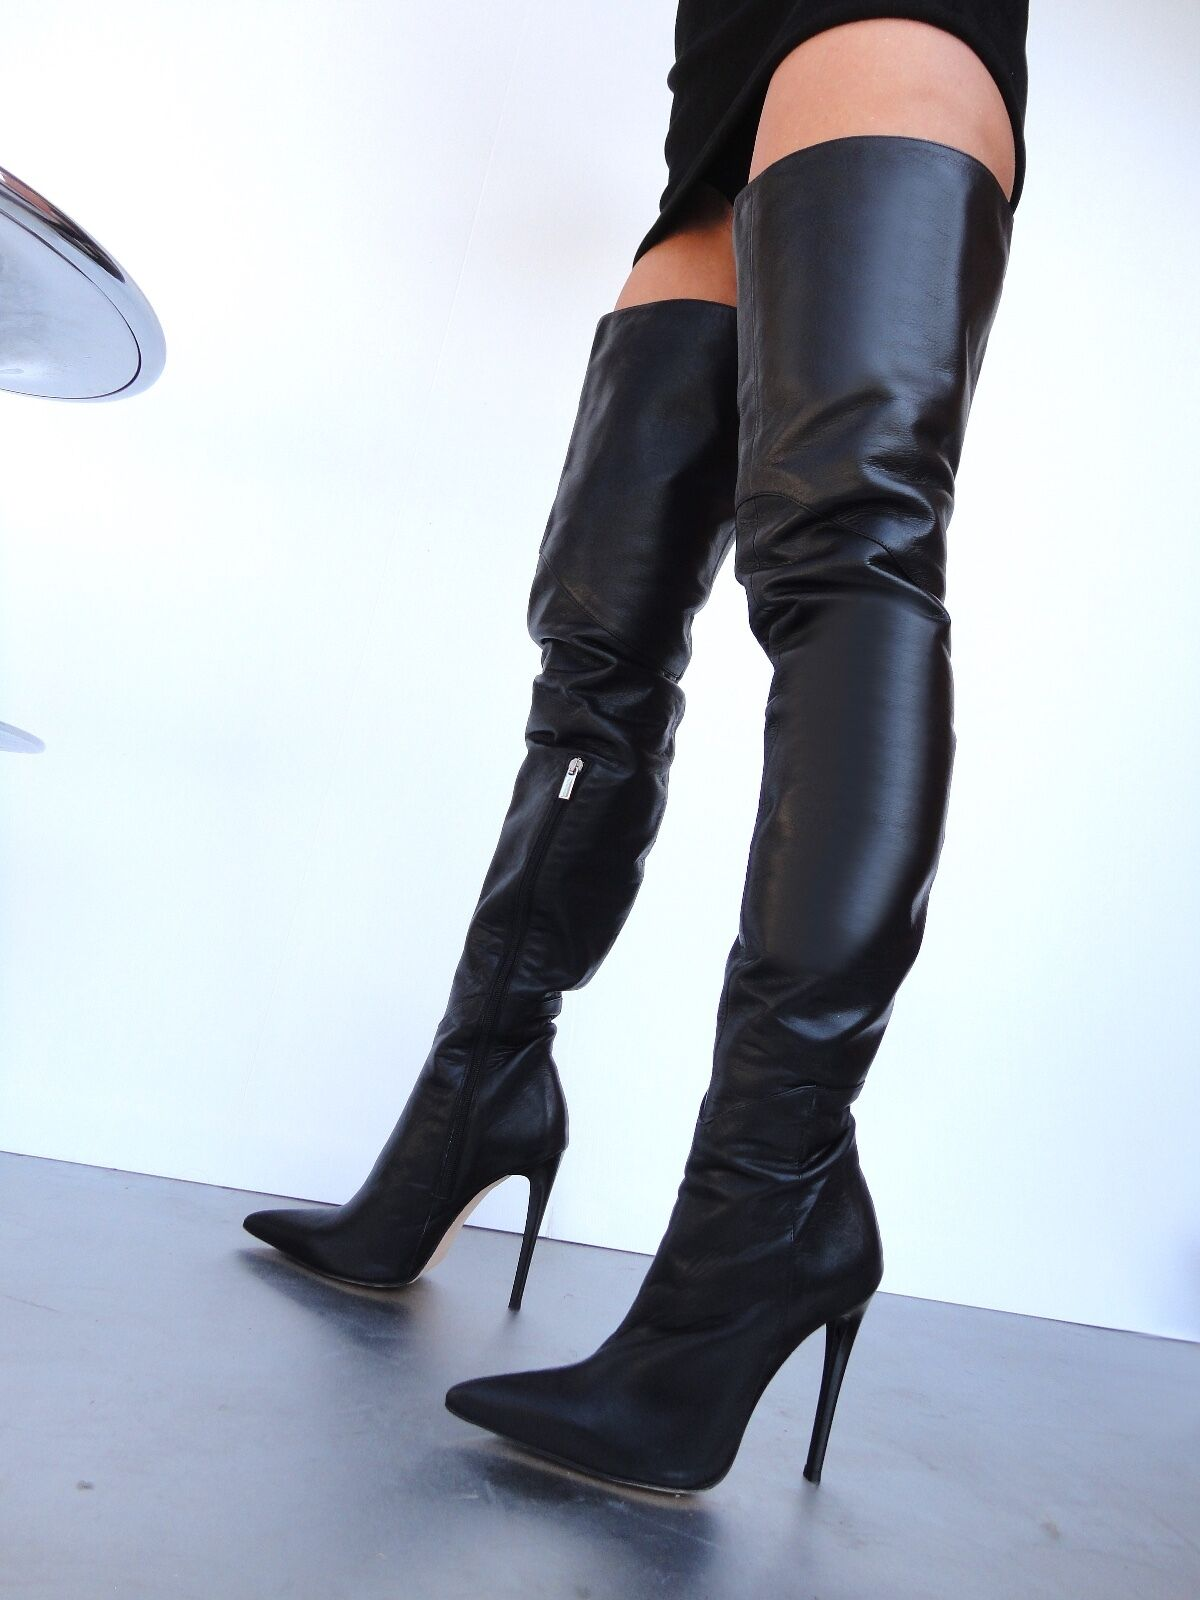 CQ Couture Custom Over the Knee Boots Stiefel Boots Front